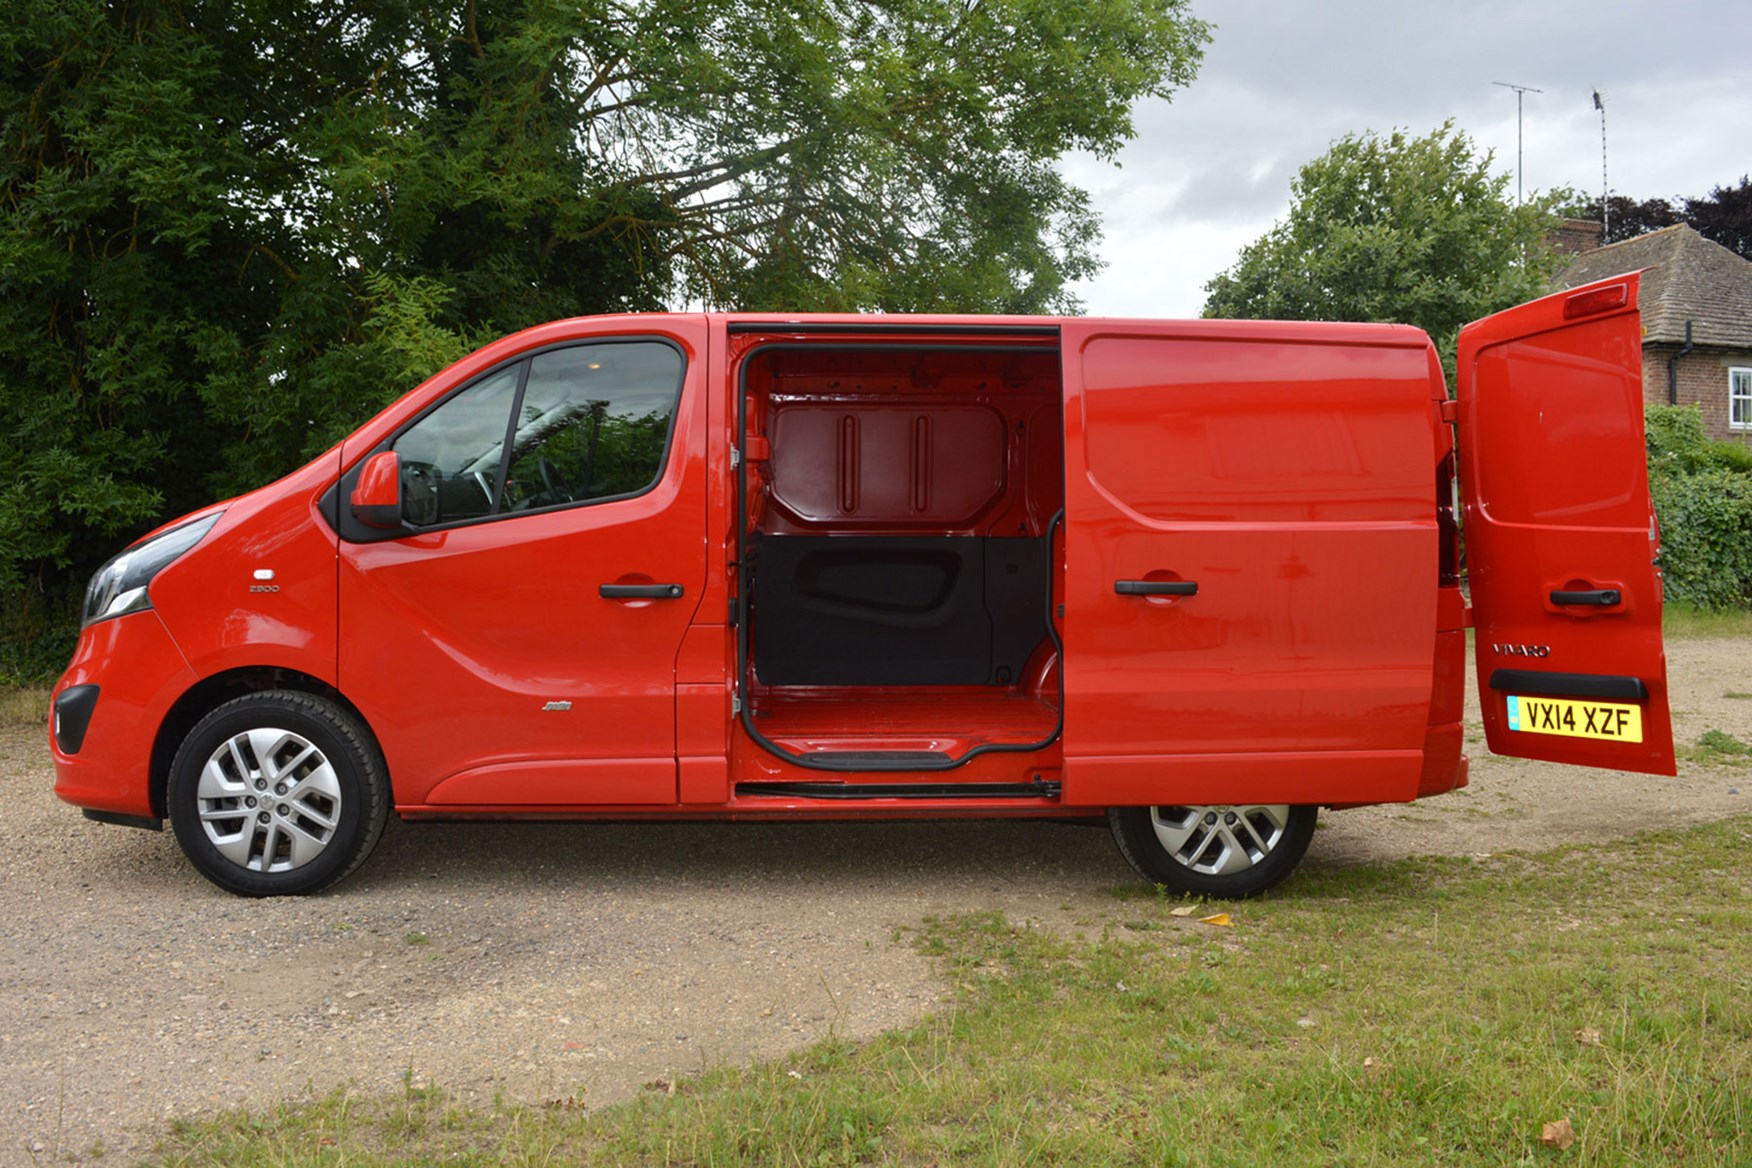 Vauxhall Vivaro Sportive EU5 review - side view, red, with doors open